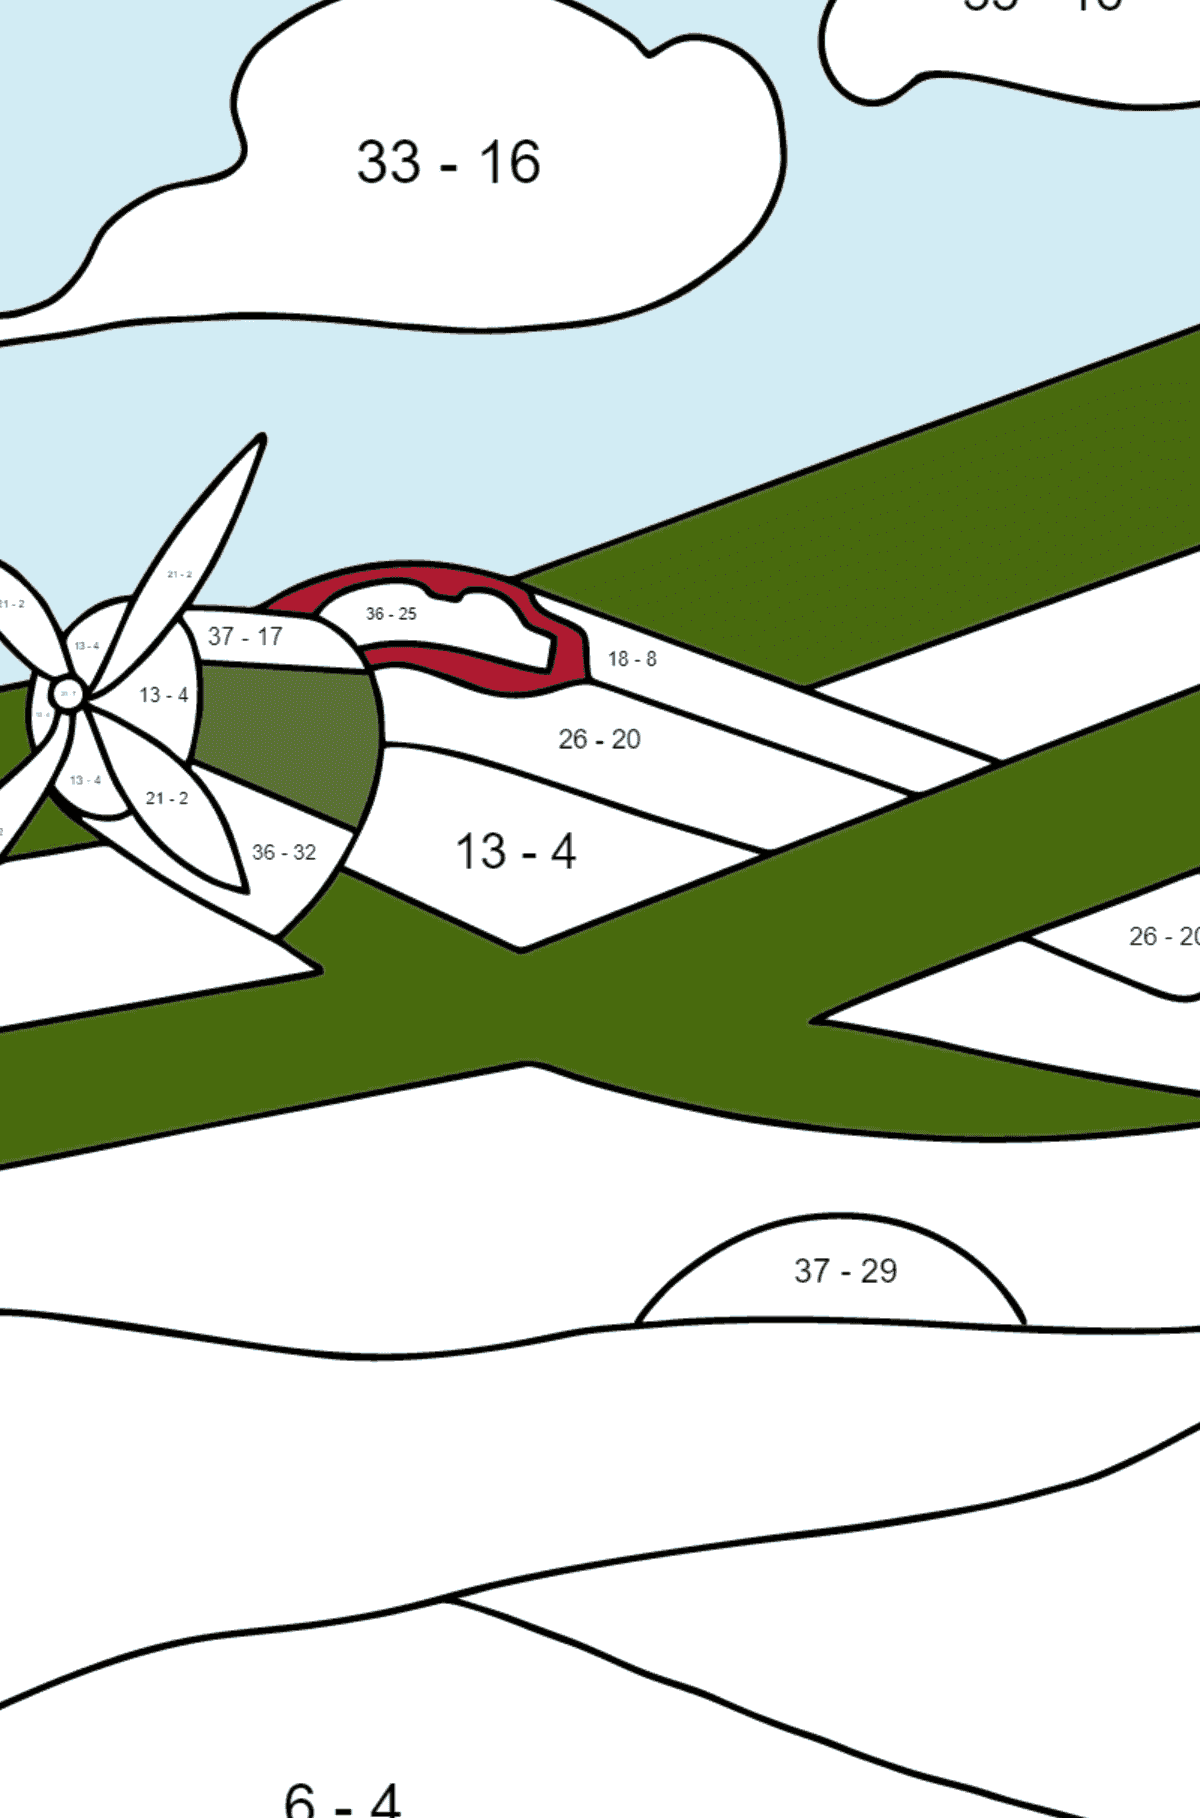 Coloring Page - A Biplane - Math Coloring - Subtraction for Kids